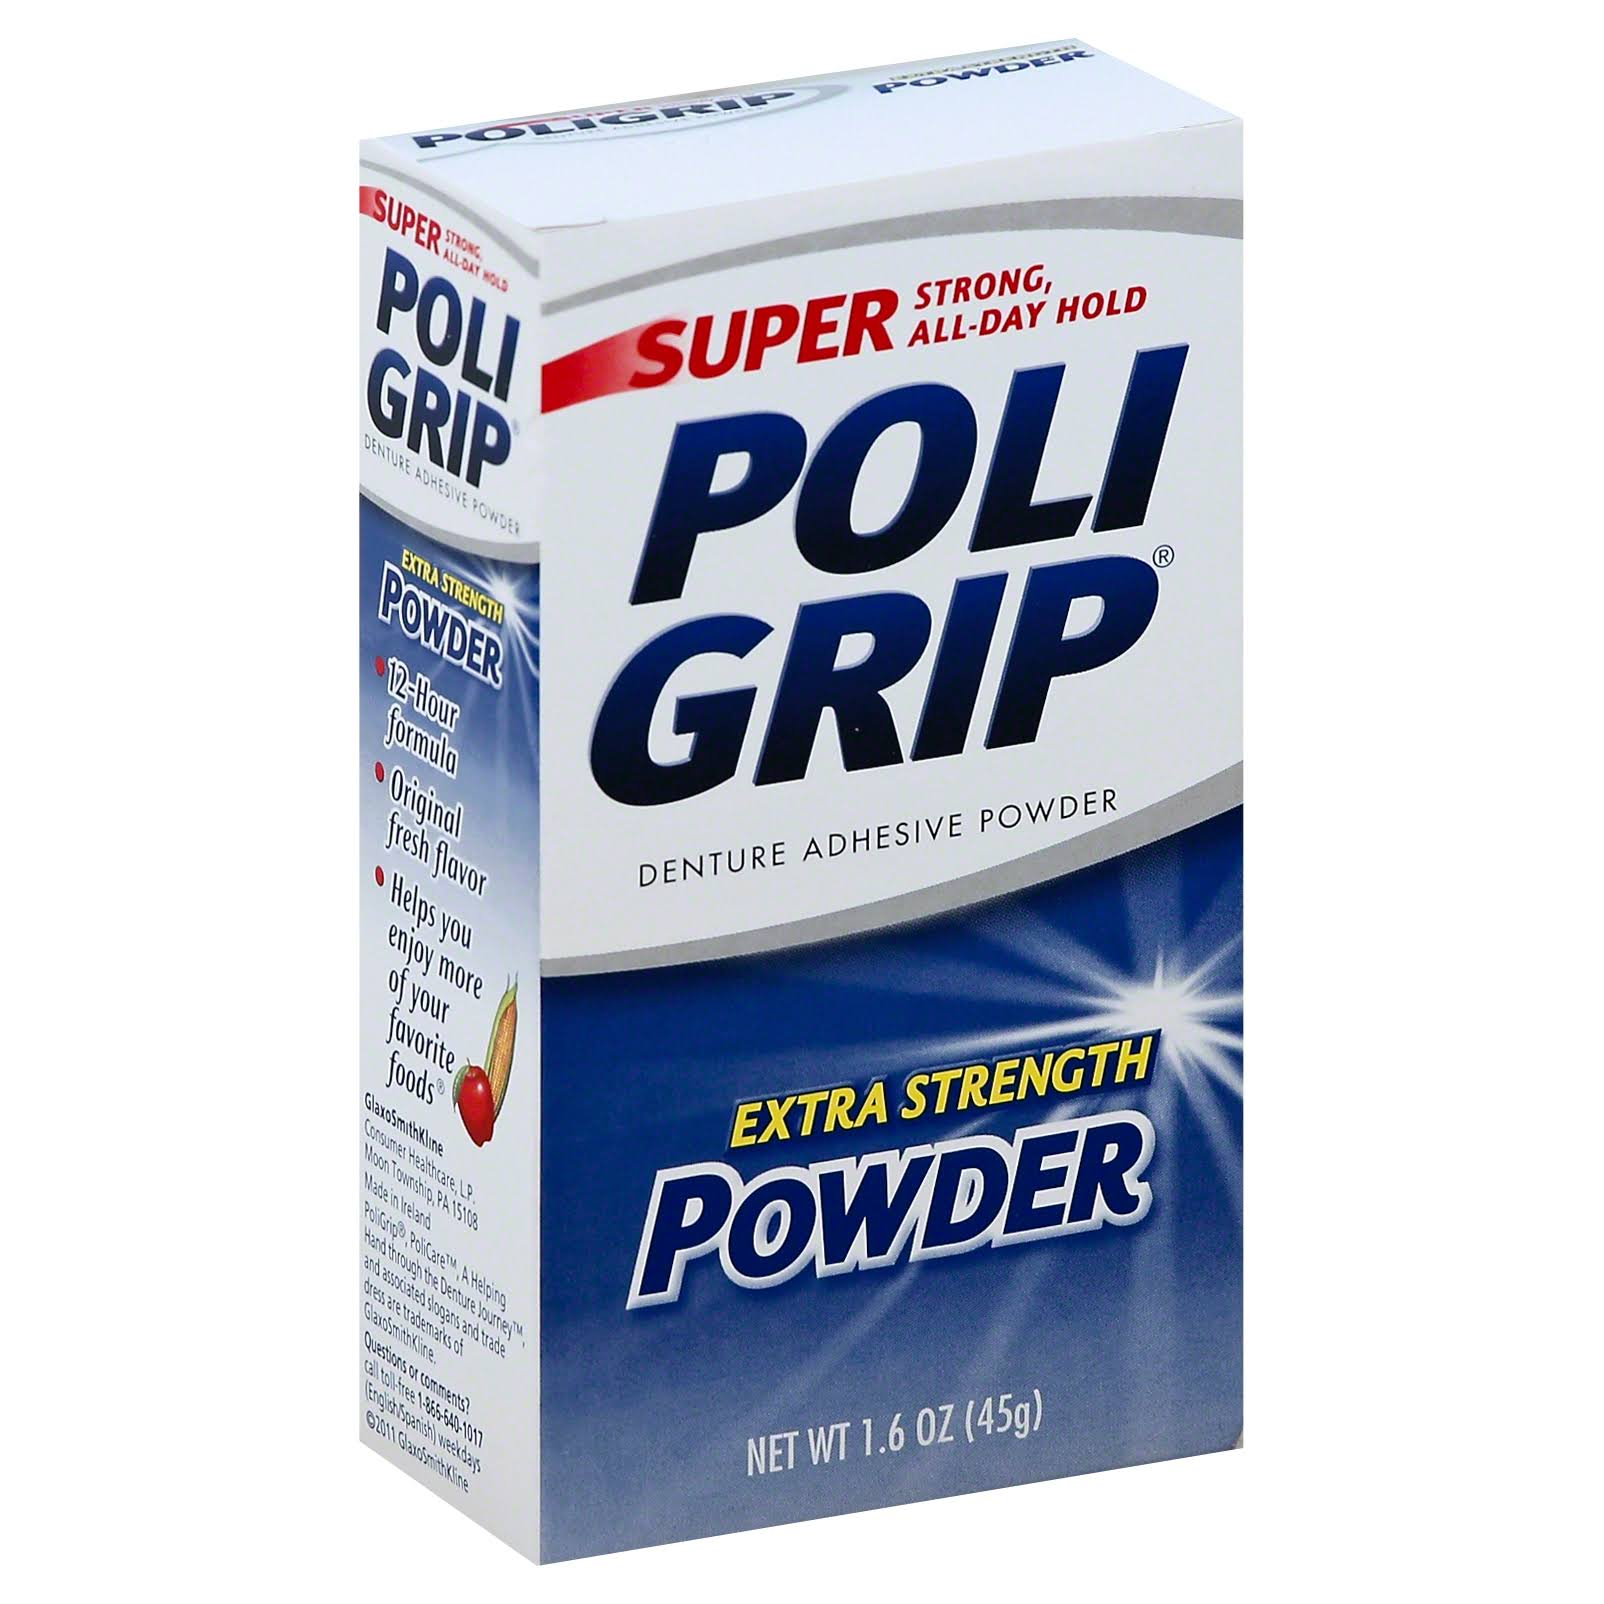 Super Poligrip Extra Strength Denture Adhesive Powder - 1.6oz